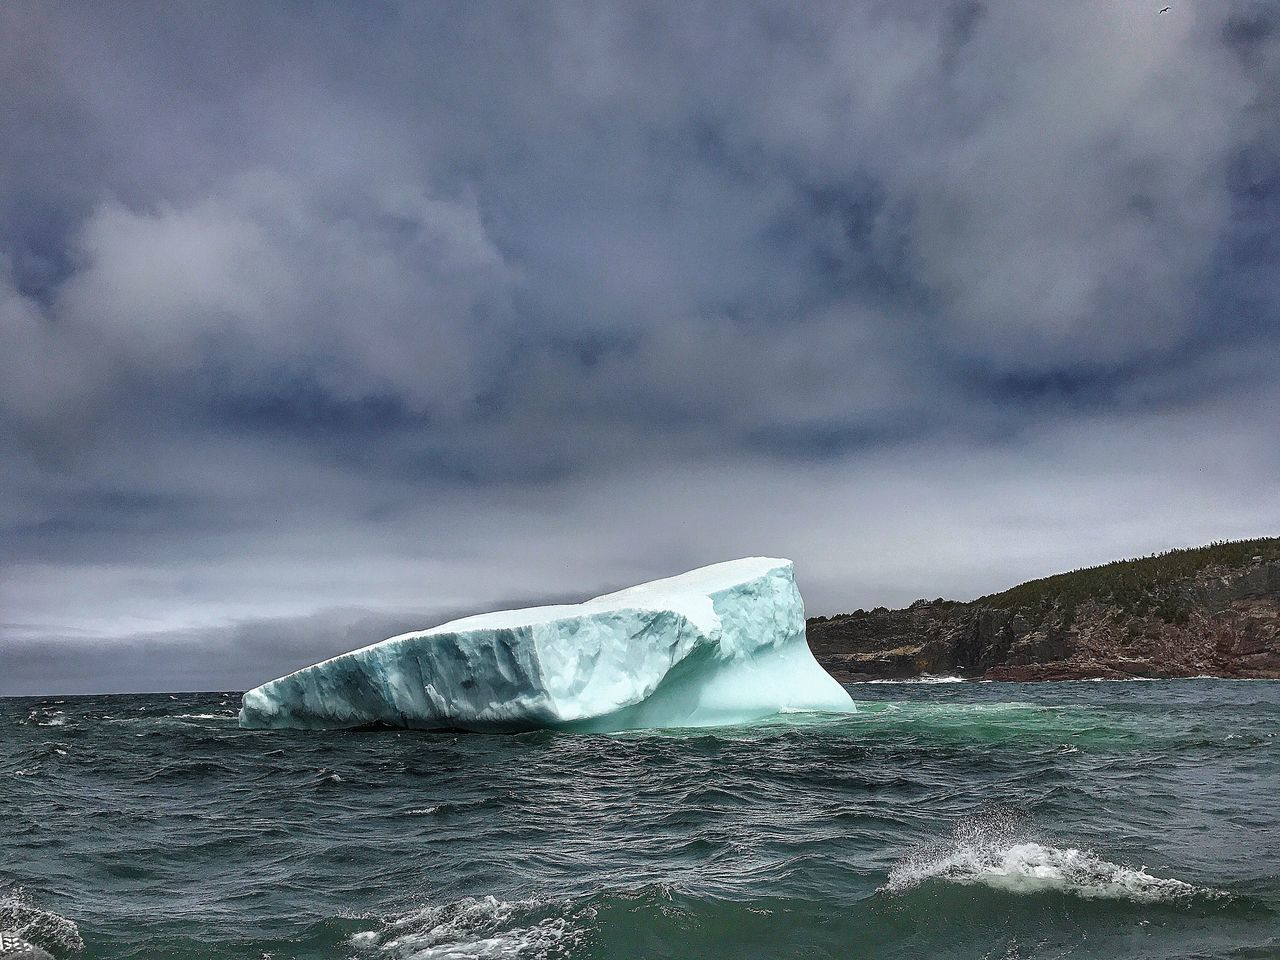 Iceberg - Newfoundland Canada - iPhone 7 Plus Beauty In Nature Sea Nature Cloud - Sky Glacier Cold Temperature Sky Ice Scenics Water Iceberg - Ice Formation No People Outdoors Frozen Iceberg Winter Day Storm Cloud Horizon Over Water The Great Outdoors - 2017 EyeEm Awards IPhoneography Canada